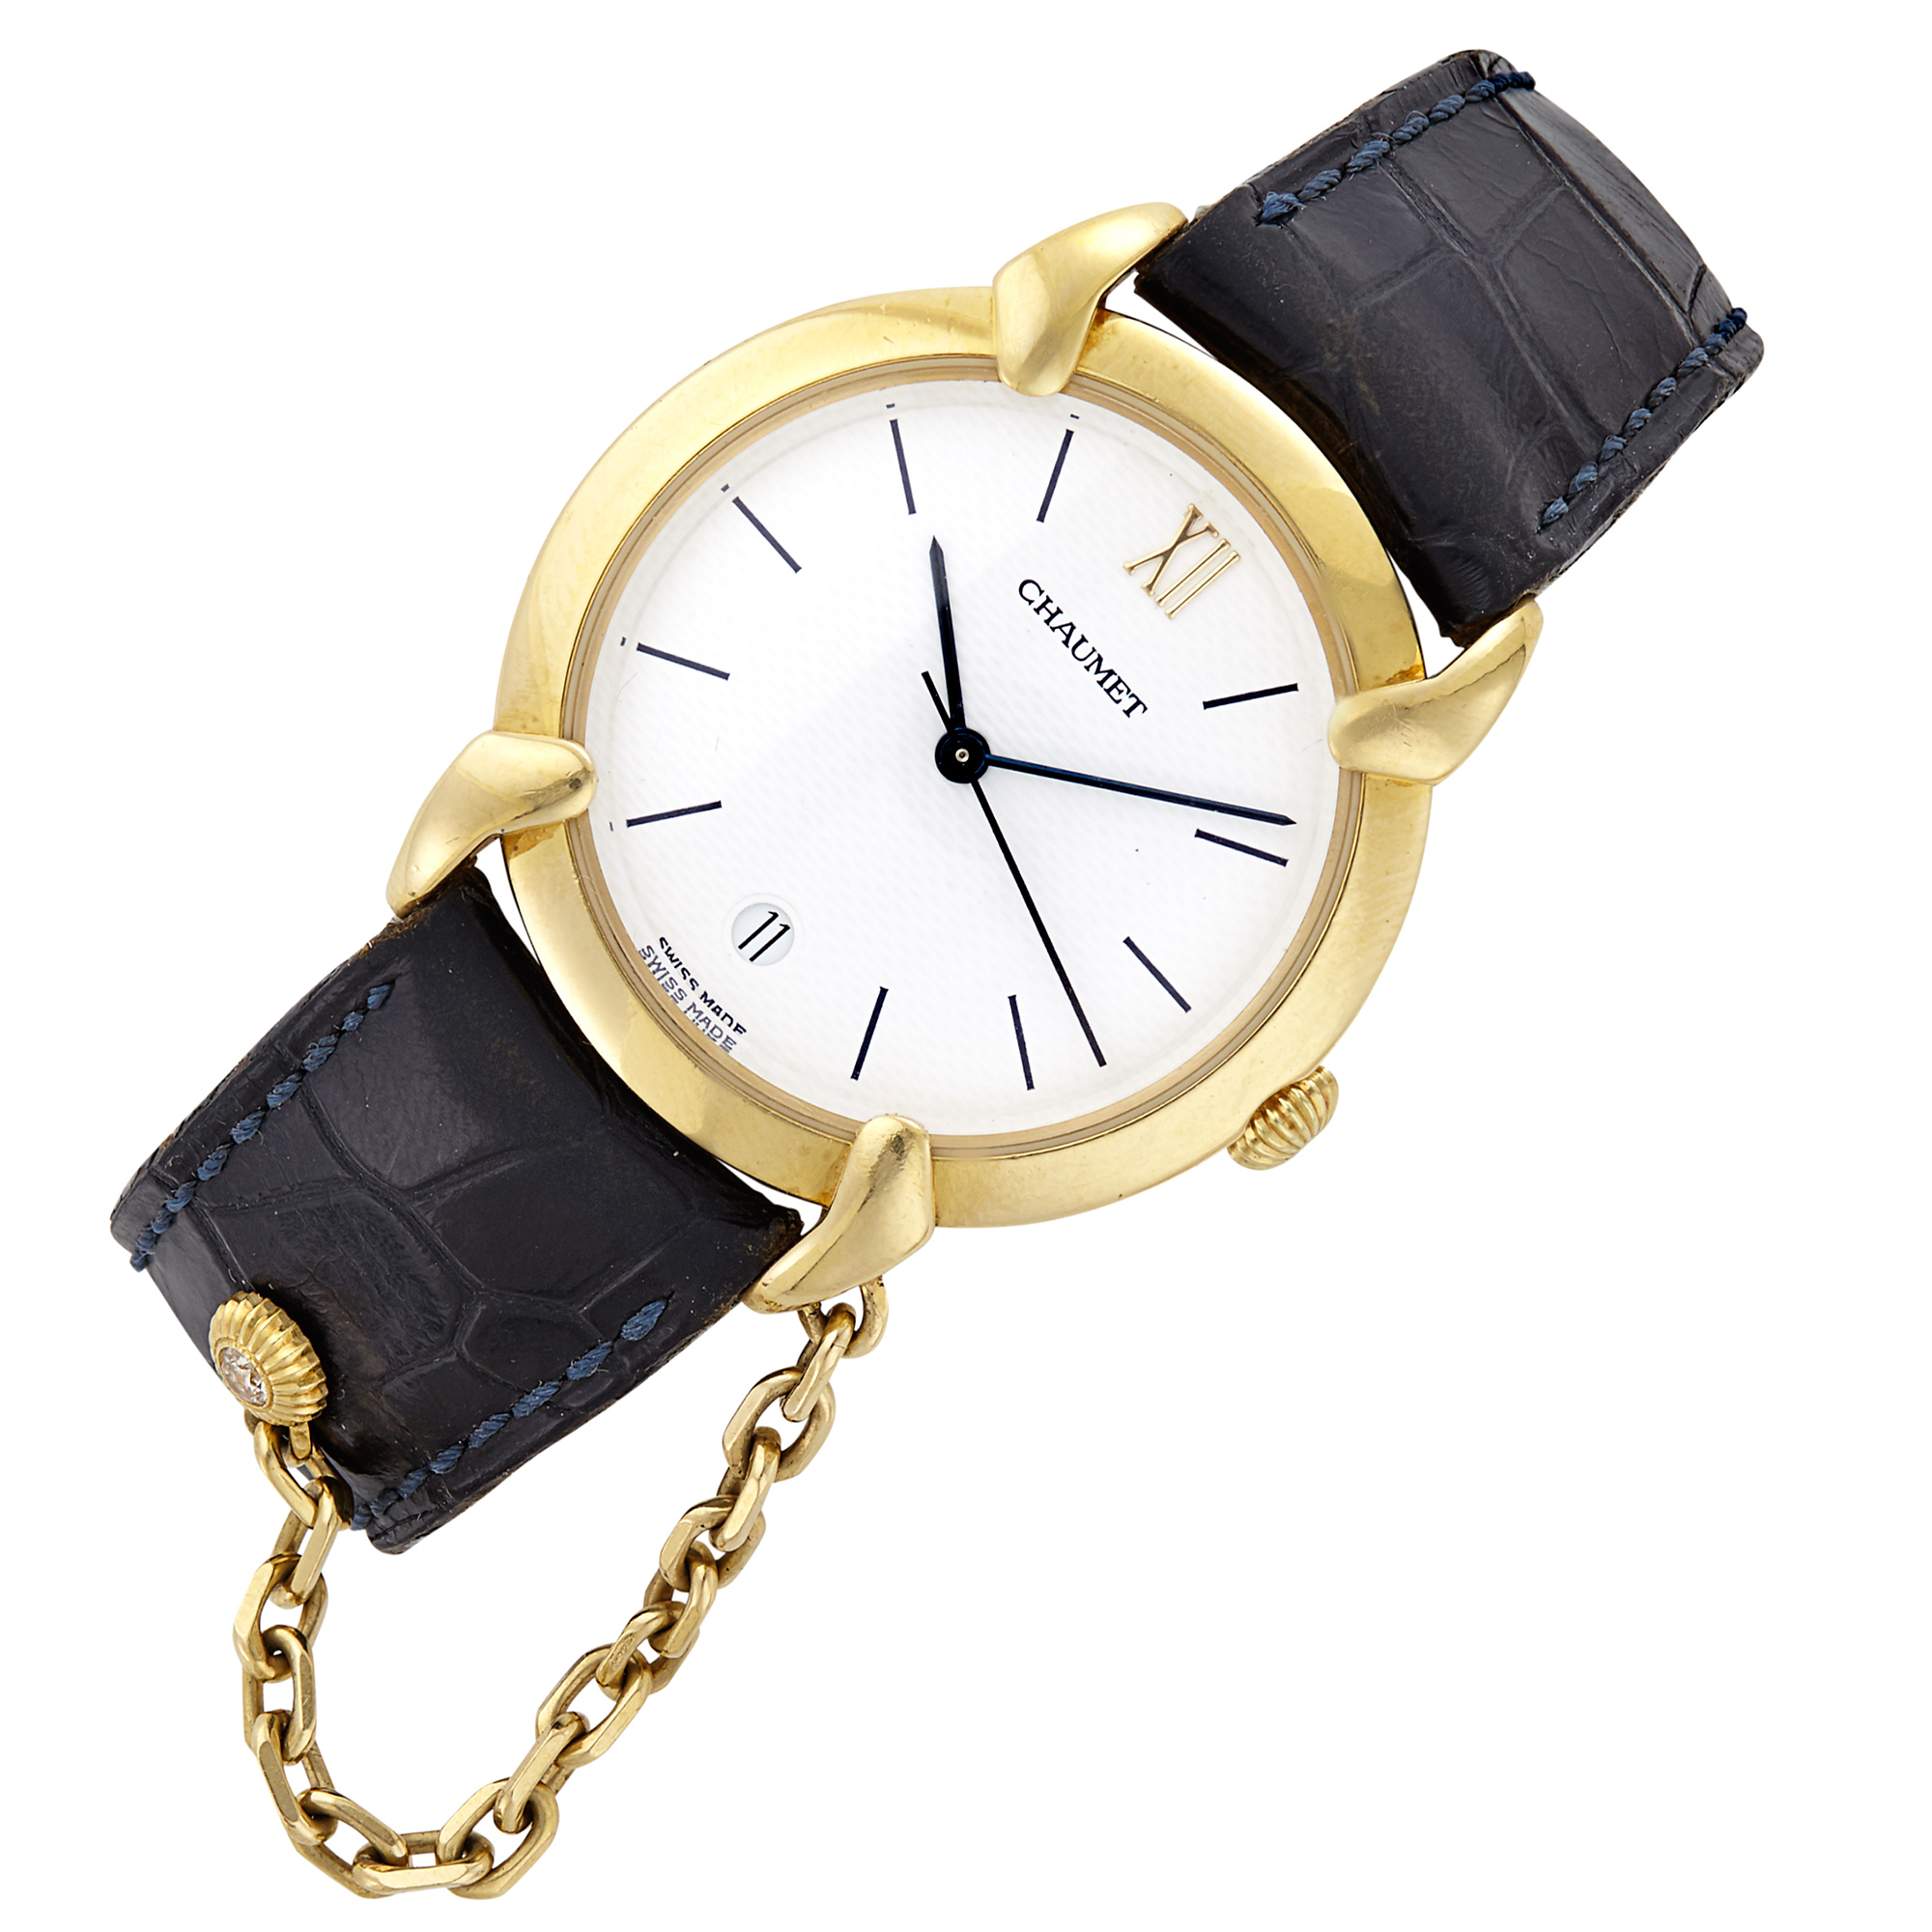 Lot image - Gold Classique Wristwatch, Chaumet, Paris